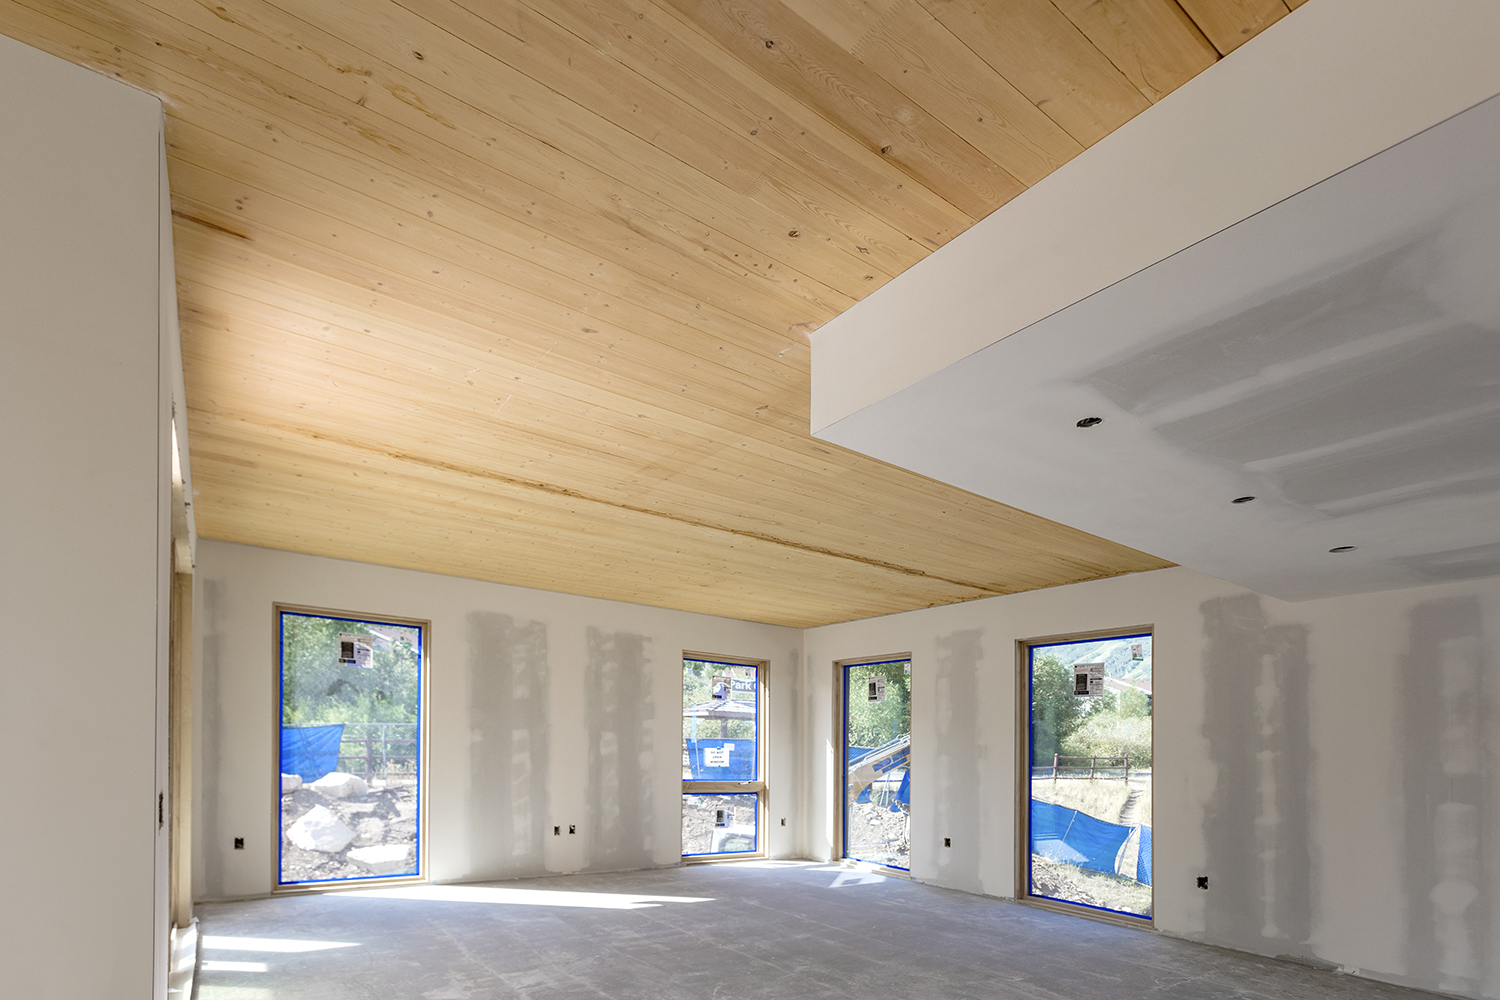 R&O Uses Cross Laminated Timbers for Structural Function and Visual Appeal